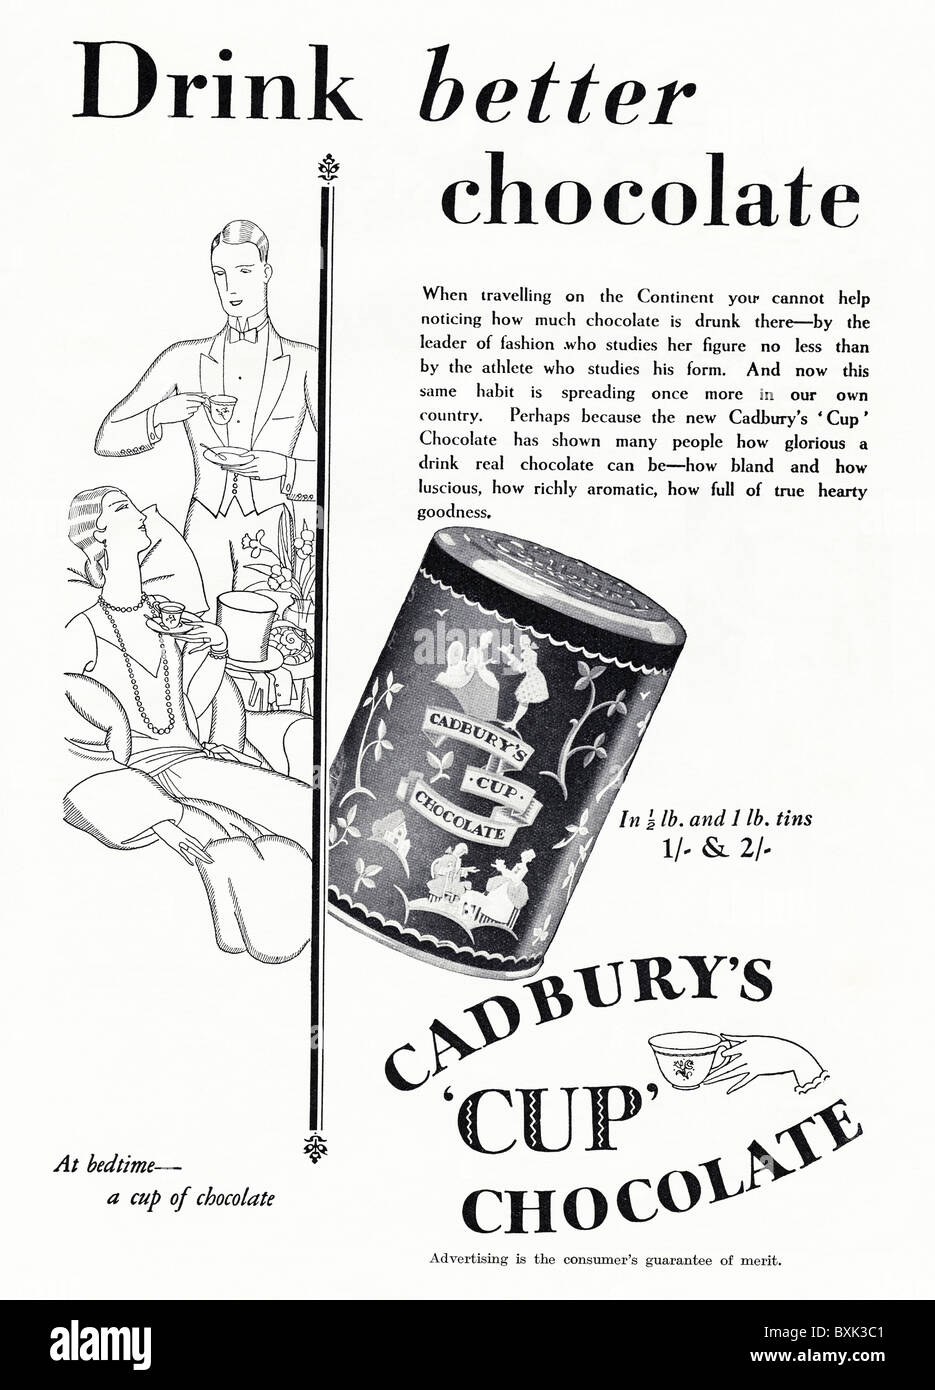 Full page black and white advert for Cadbury's chocolate drink in women's magazine circa 1929 - Stock Image